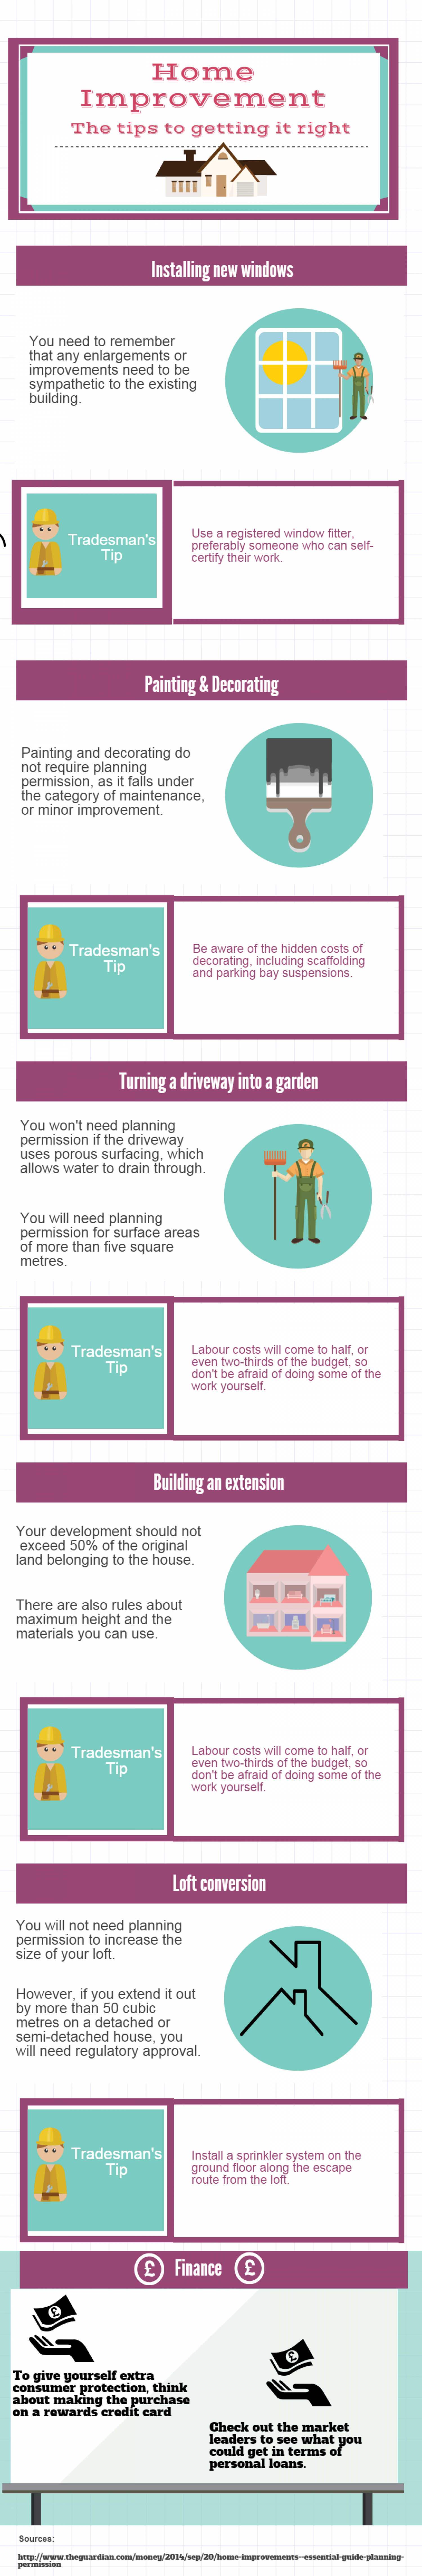 Home Improvements: How to get it right Infographic